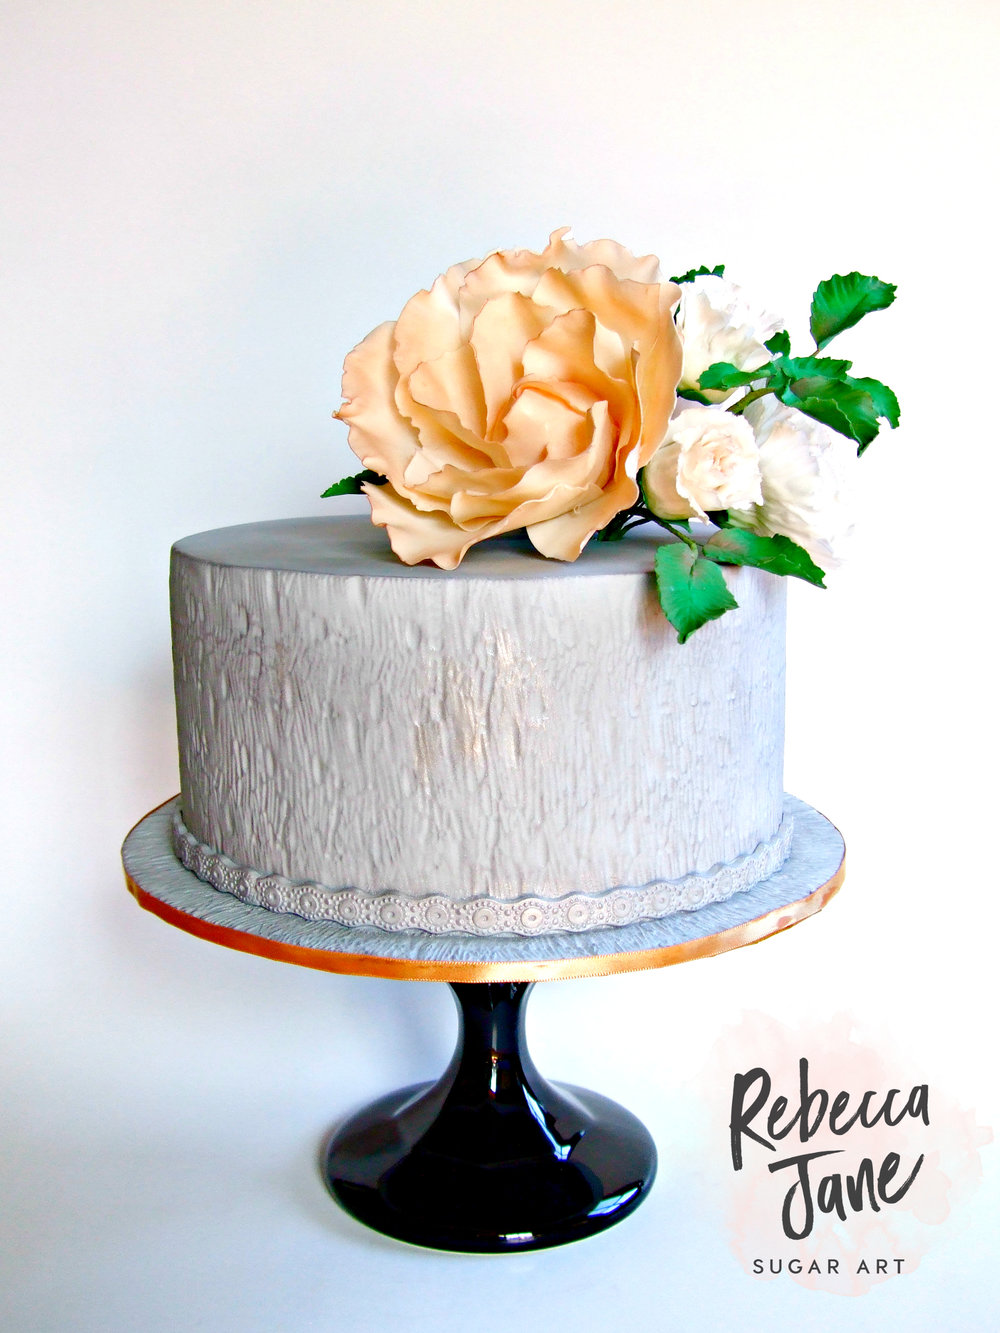 Rebecca Jane Sugar Art - Grey textured cake with sugar flowers